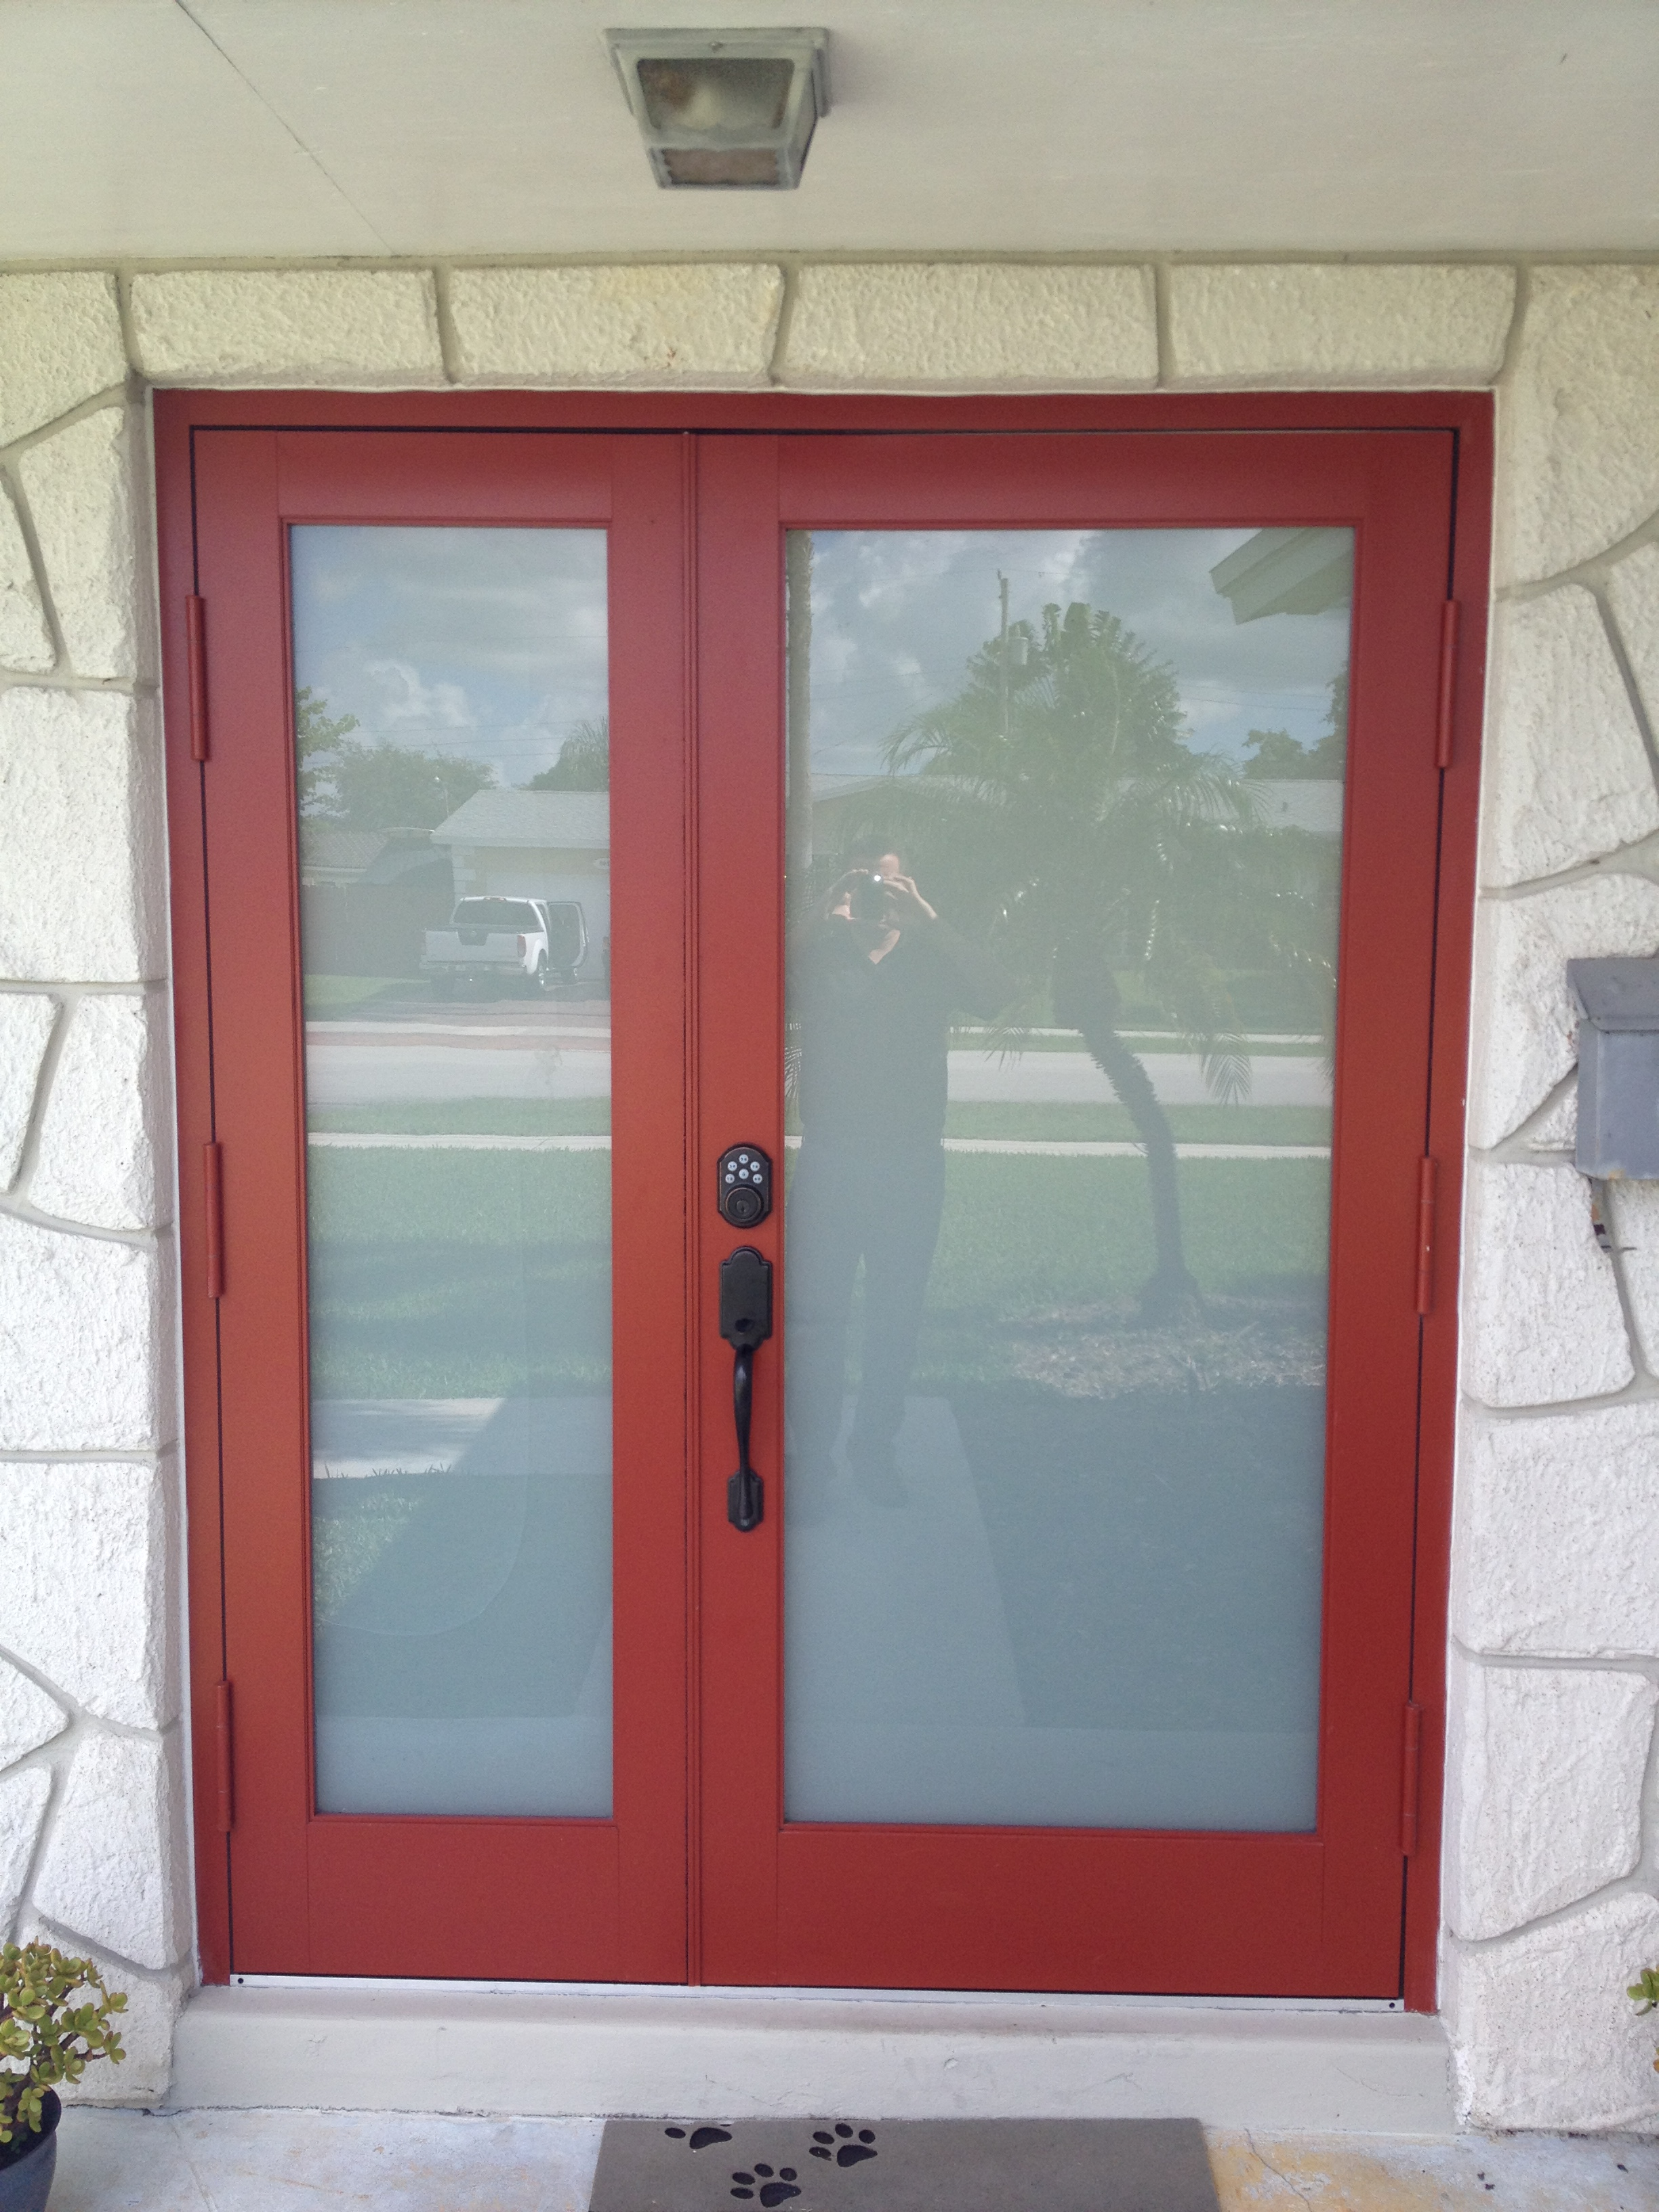 Handy man things inc and hmt windows doors coupons near for Windows and doors near me